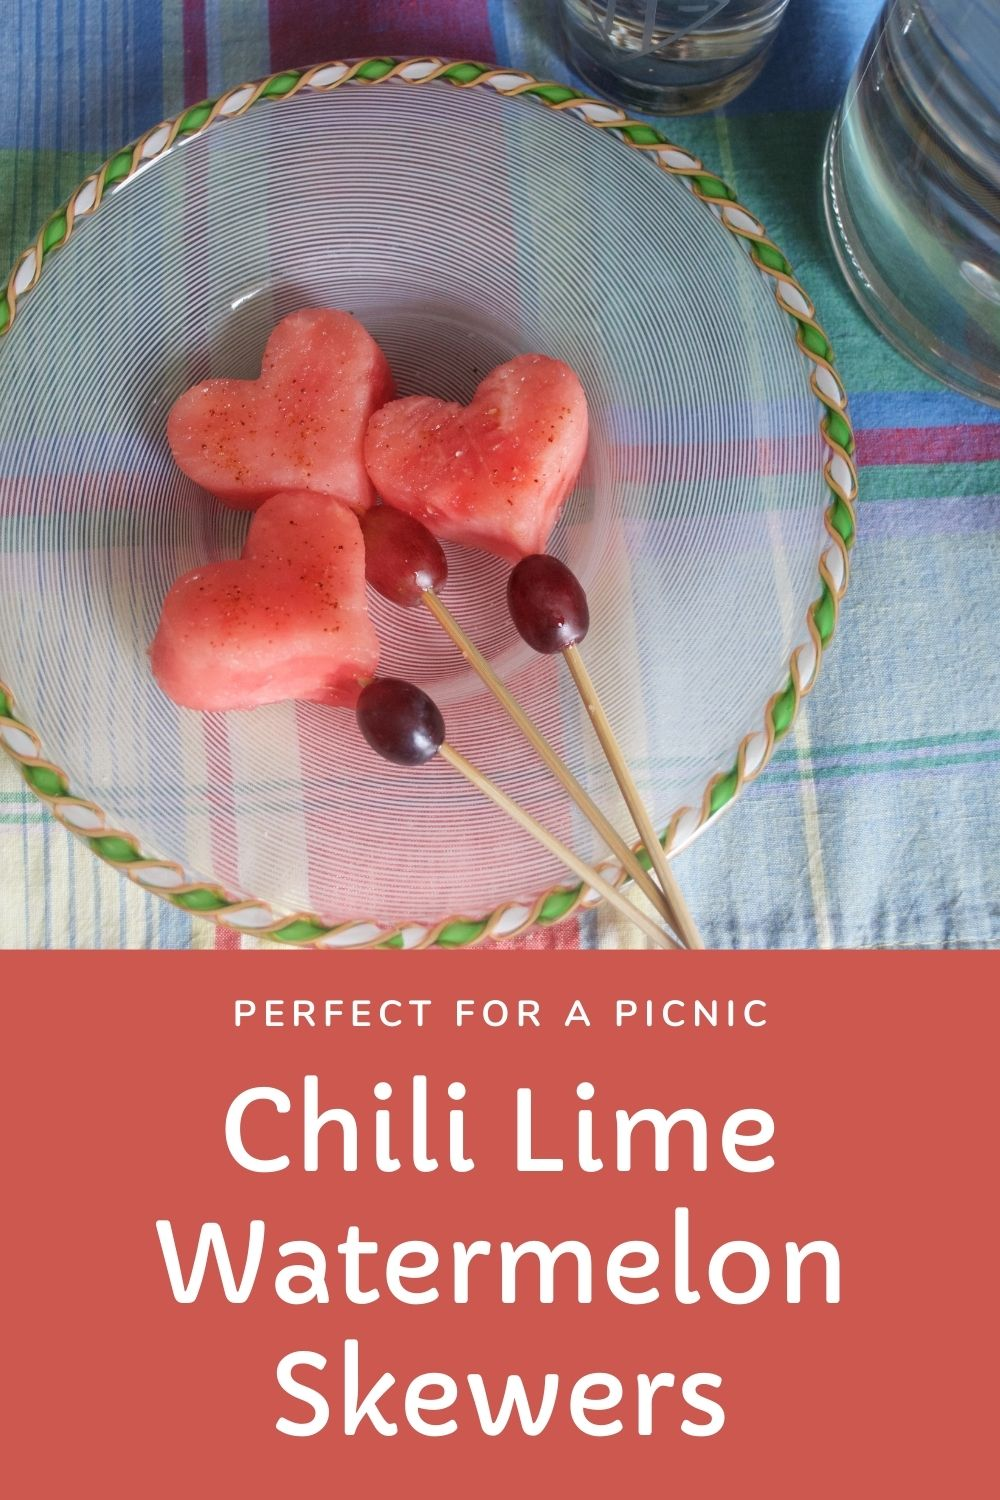 chili lime watermelon skewers graphic